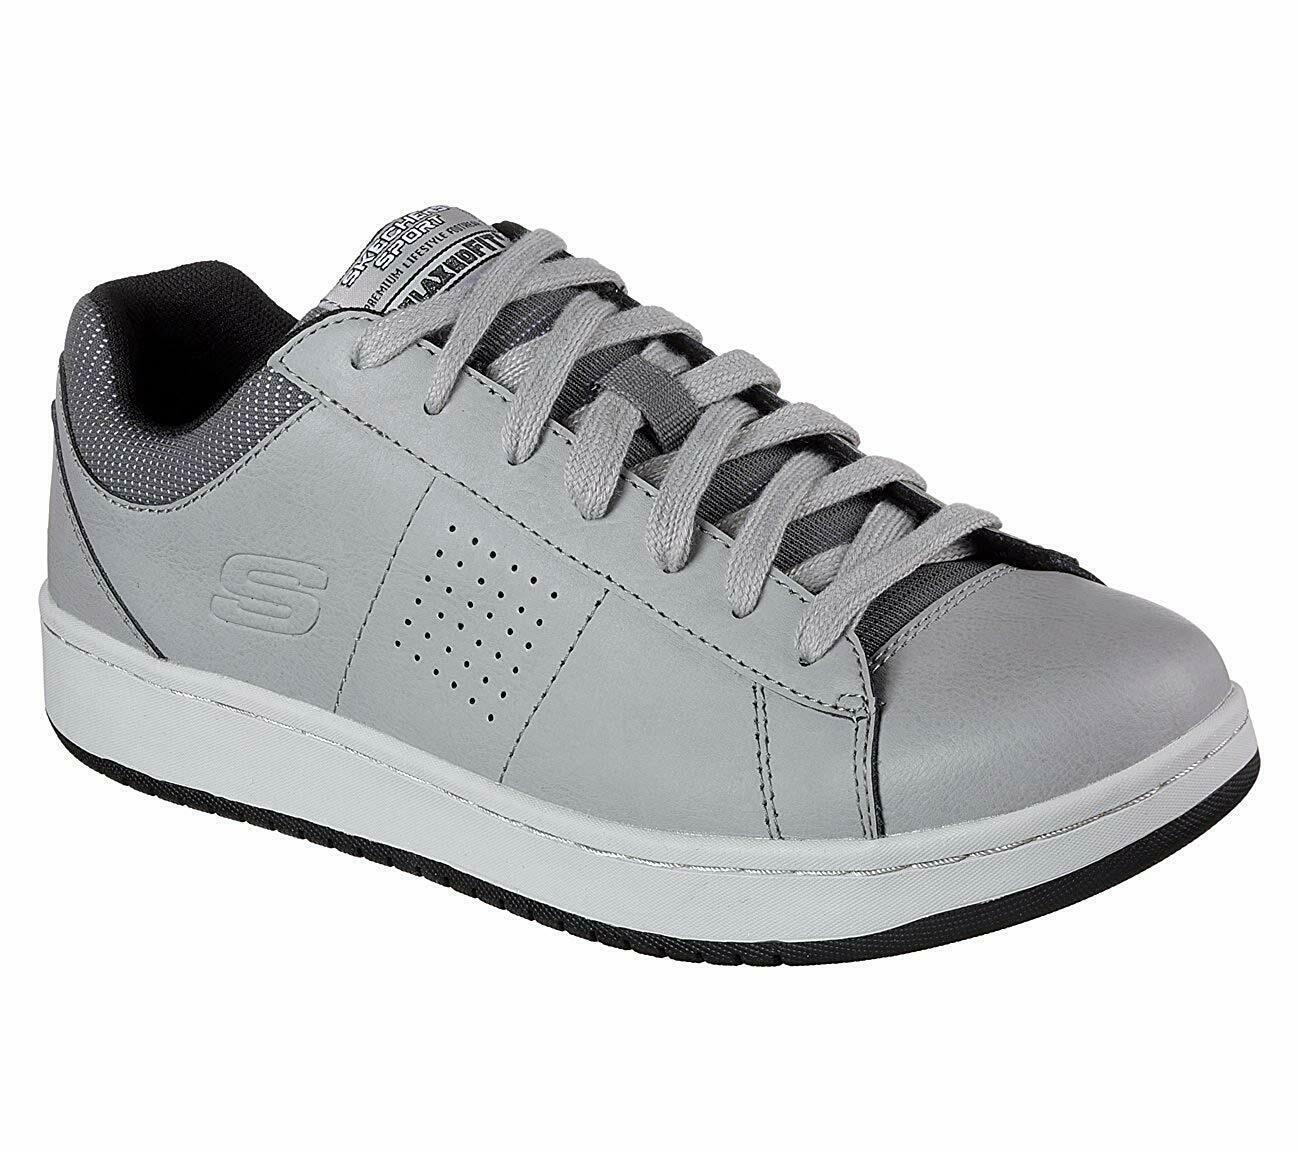 SKECHERS MEN'S TEDDER TURRET SNEAKERS GRAY 52712